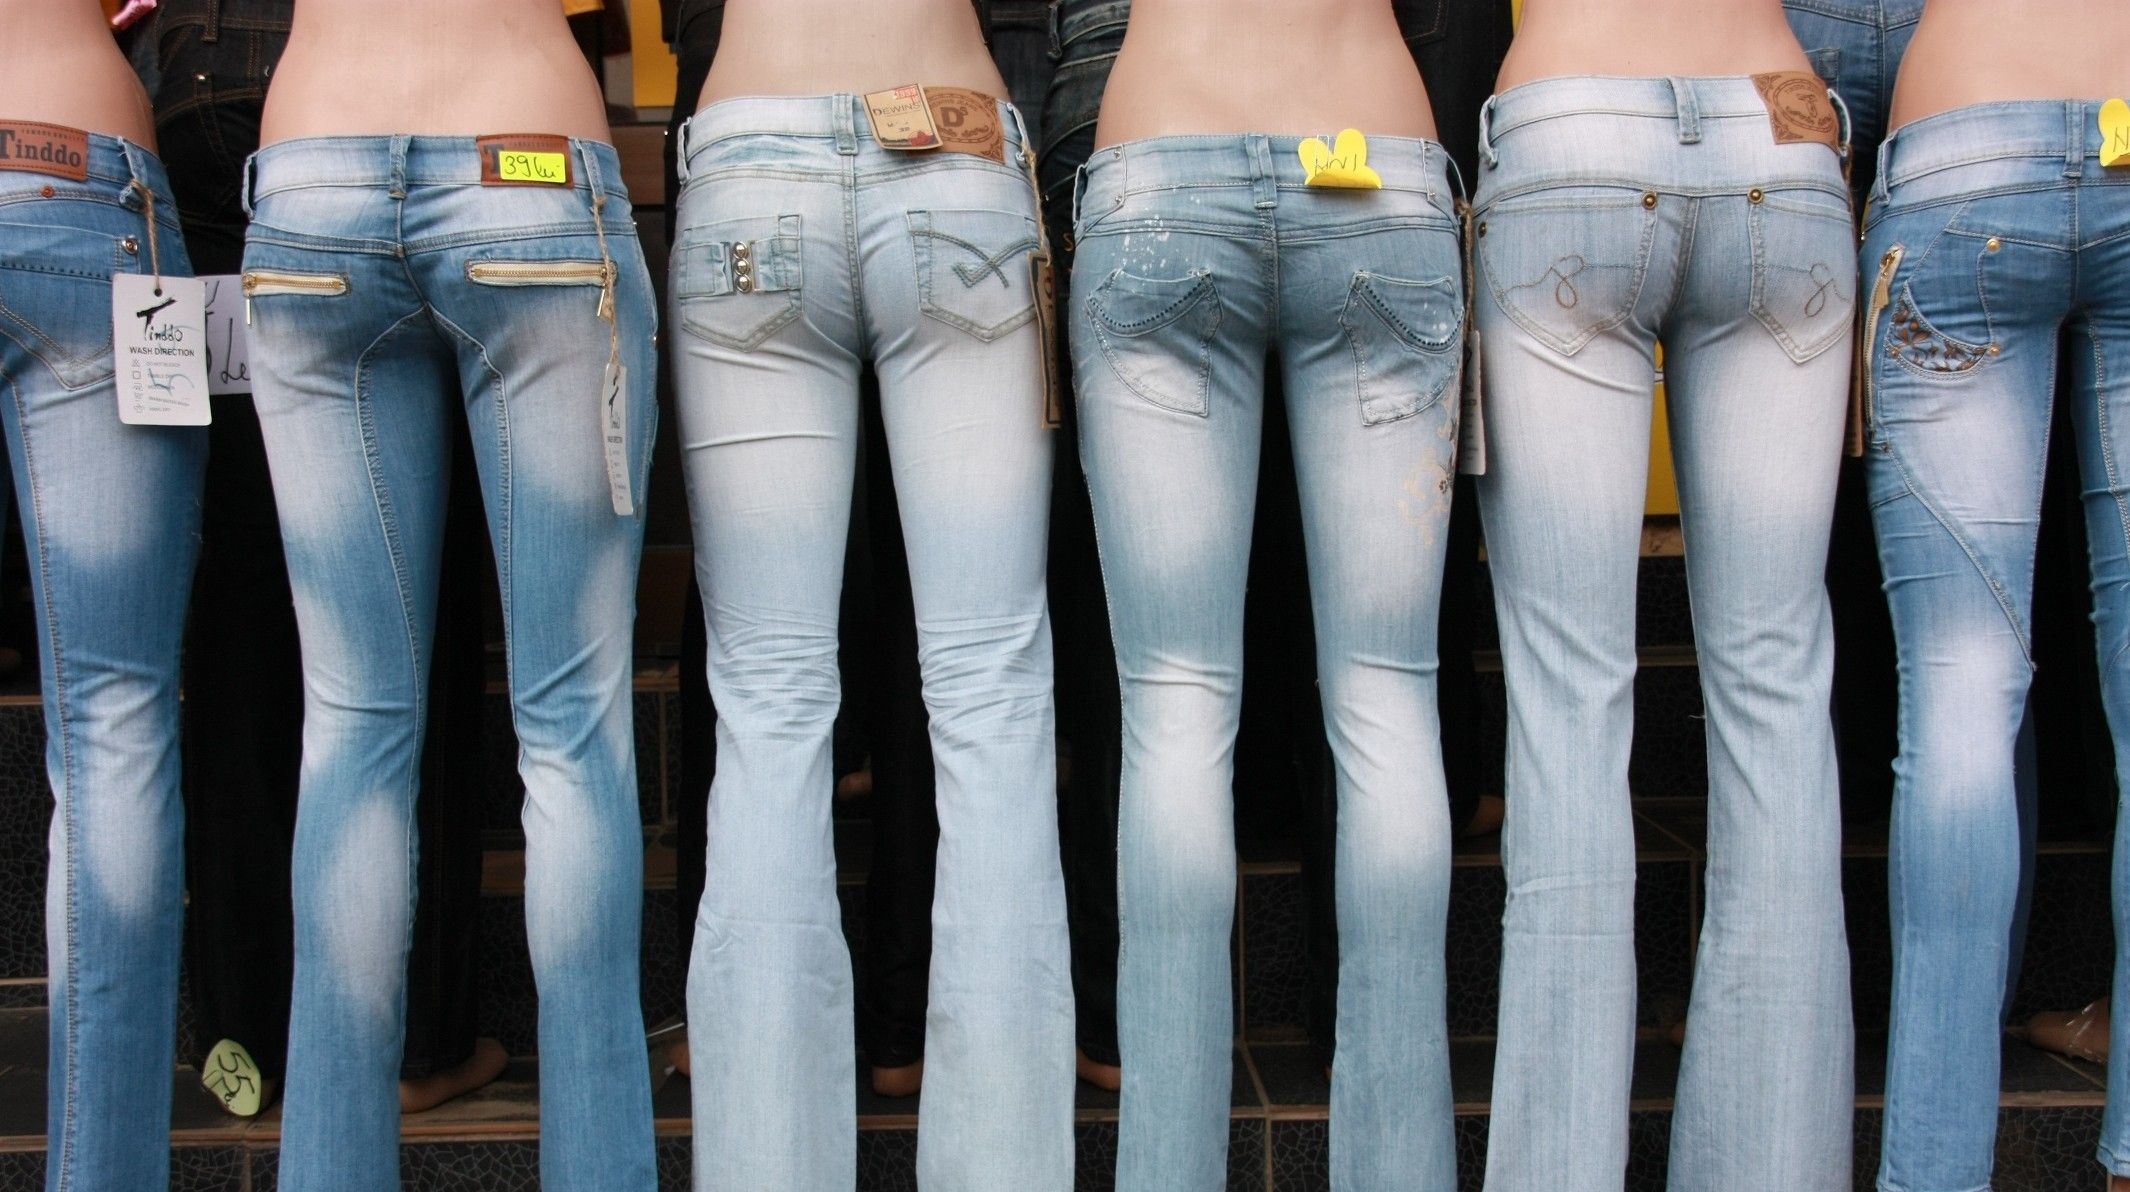 Top 10 Most Expensive Jeans in the World